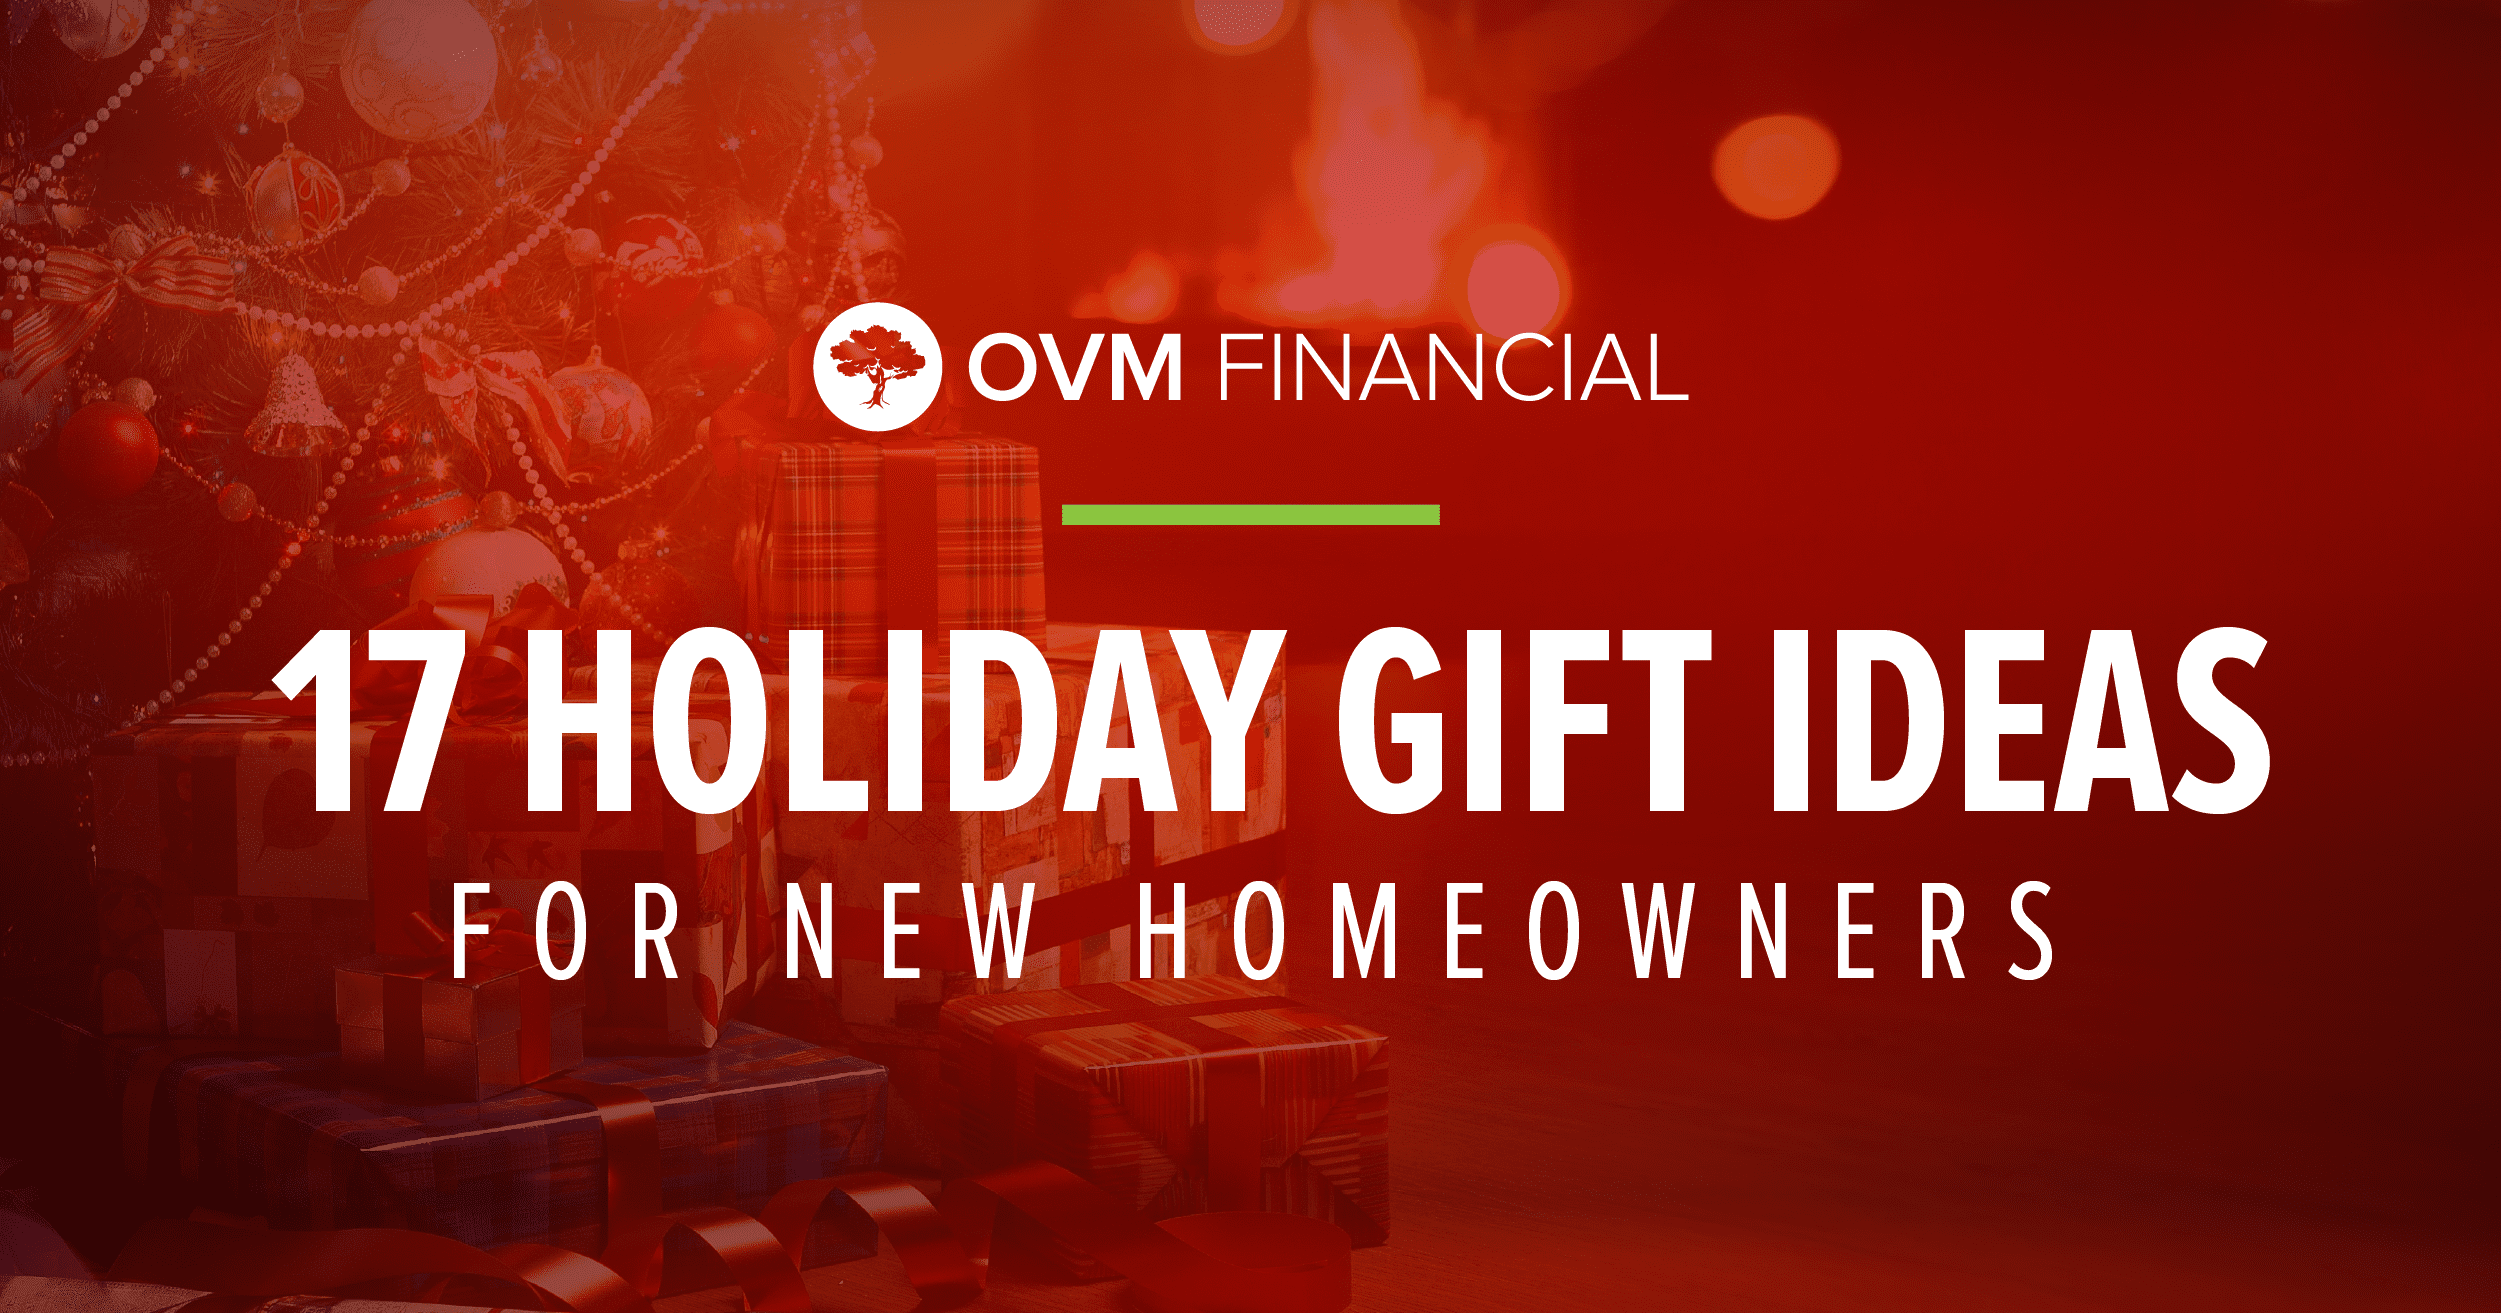 Holiday Gift Guide For Homeowners